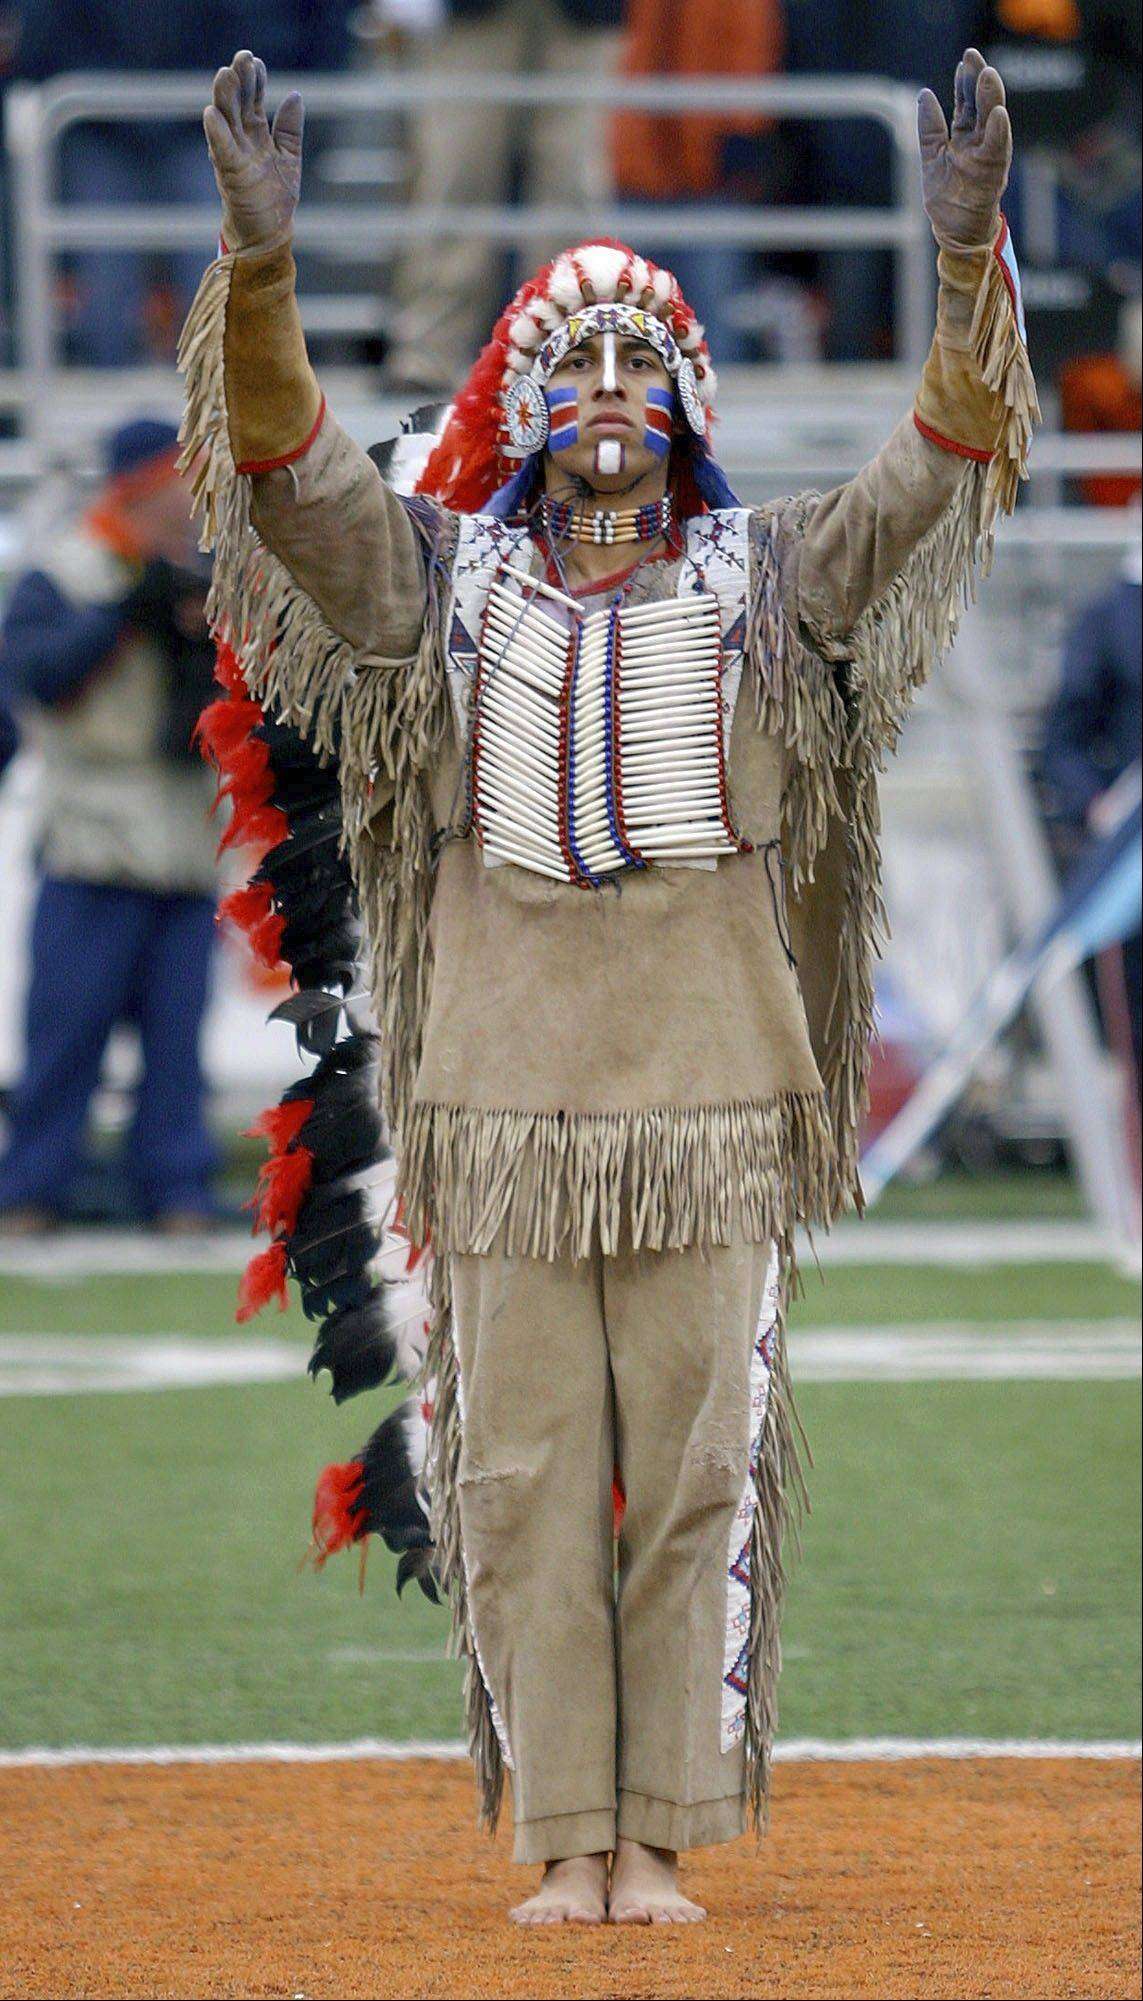 Logan Ponce performs as Chief Illiniwek during halftime of a football game against Purdue on Nov. 11, 2006. Six years after the chief's last appearance, a University of Illinois student group has put an item on a campus election ballot trying to garner support for making Chief Illiniwek the official symbol of the campus.